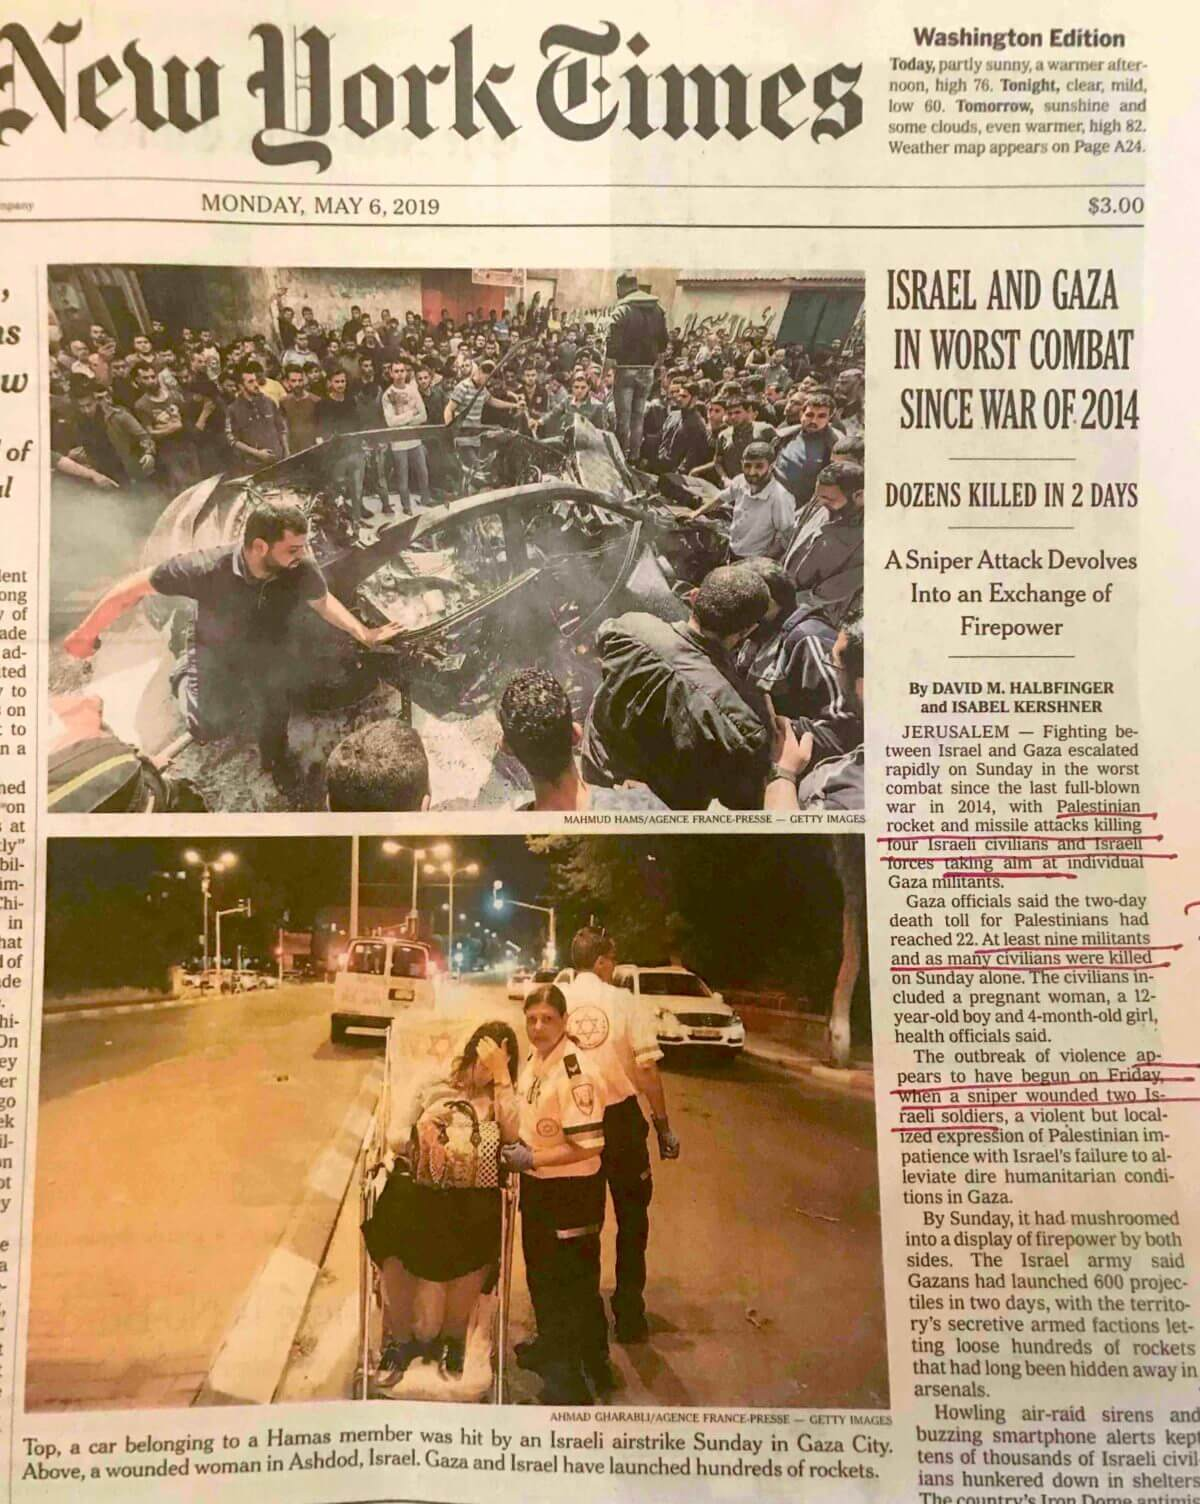 Militants in Gaza vs. civilians in Israel on the front page of the New York Times.